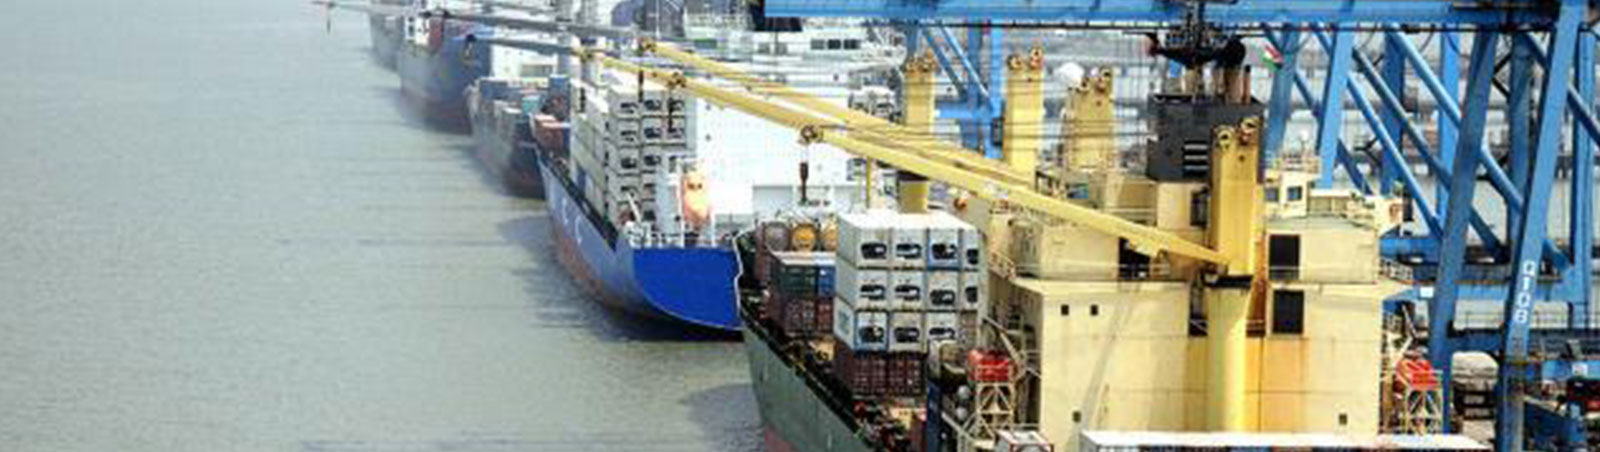 Milaha maritime | Feeder agency | Services | Abrao Group